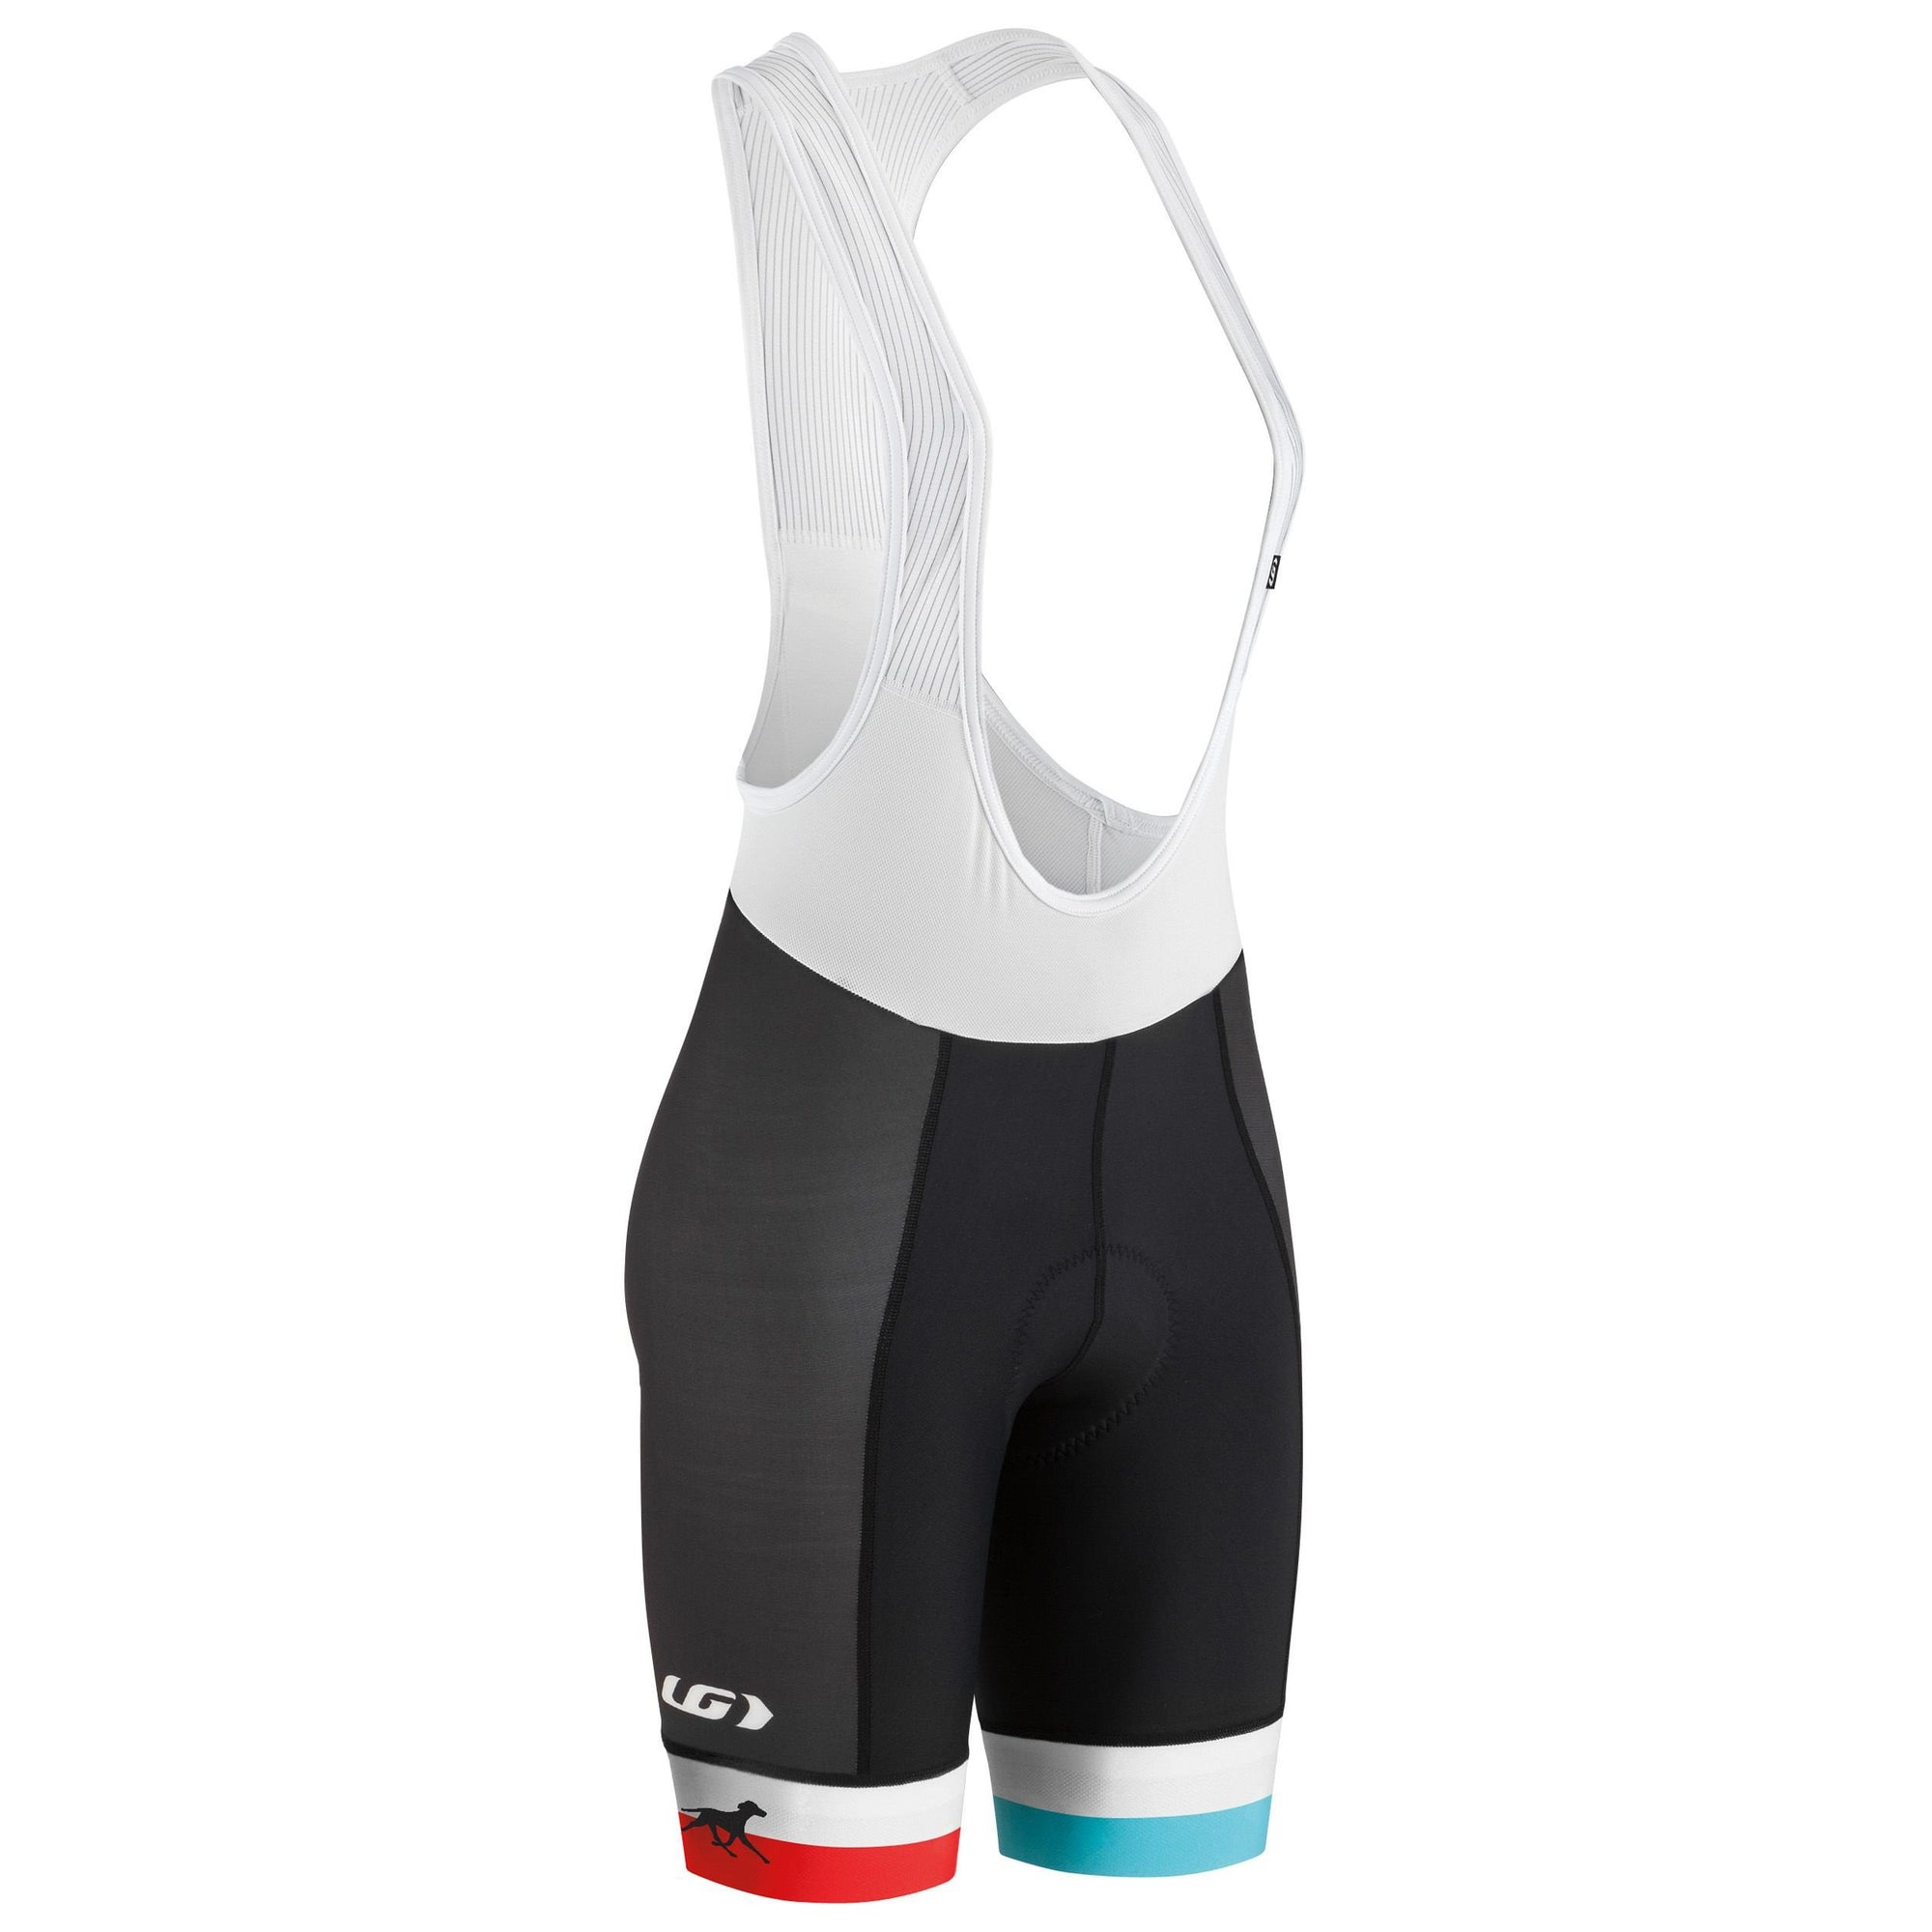 Louis Garneau 2019 Women's Cliff Team Bib